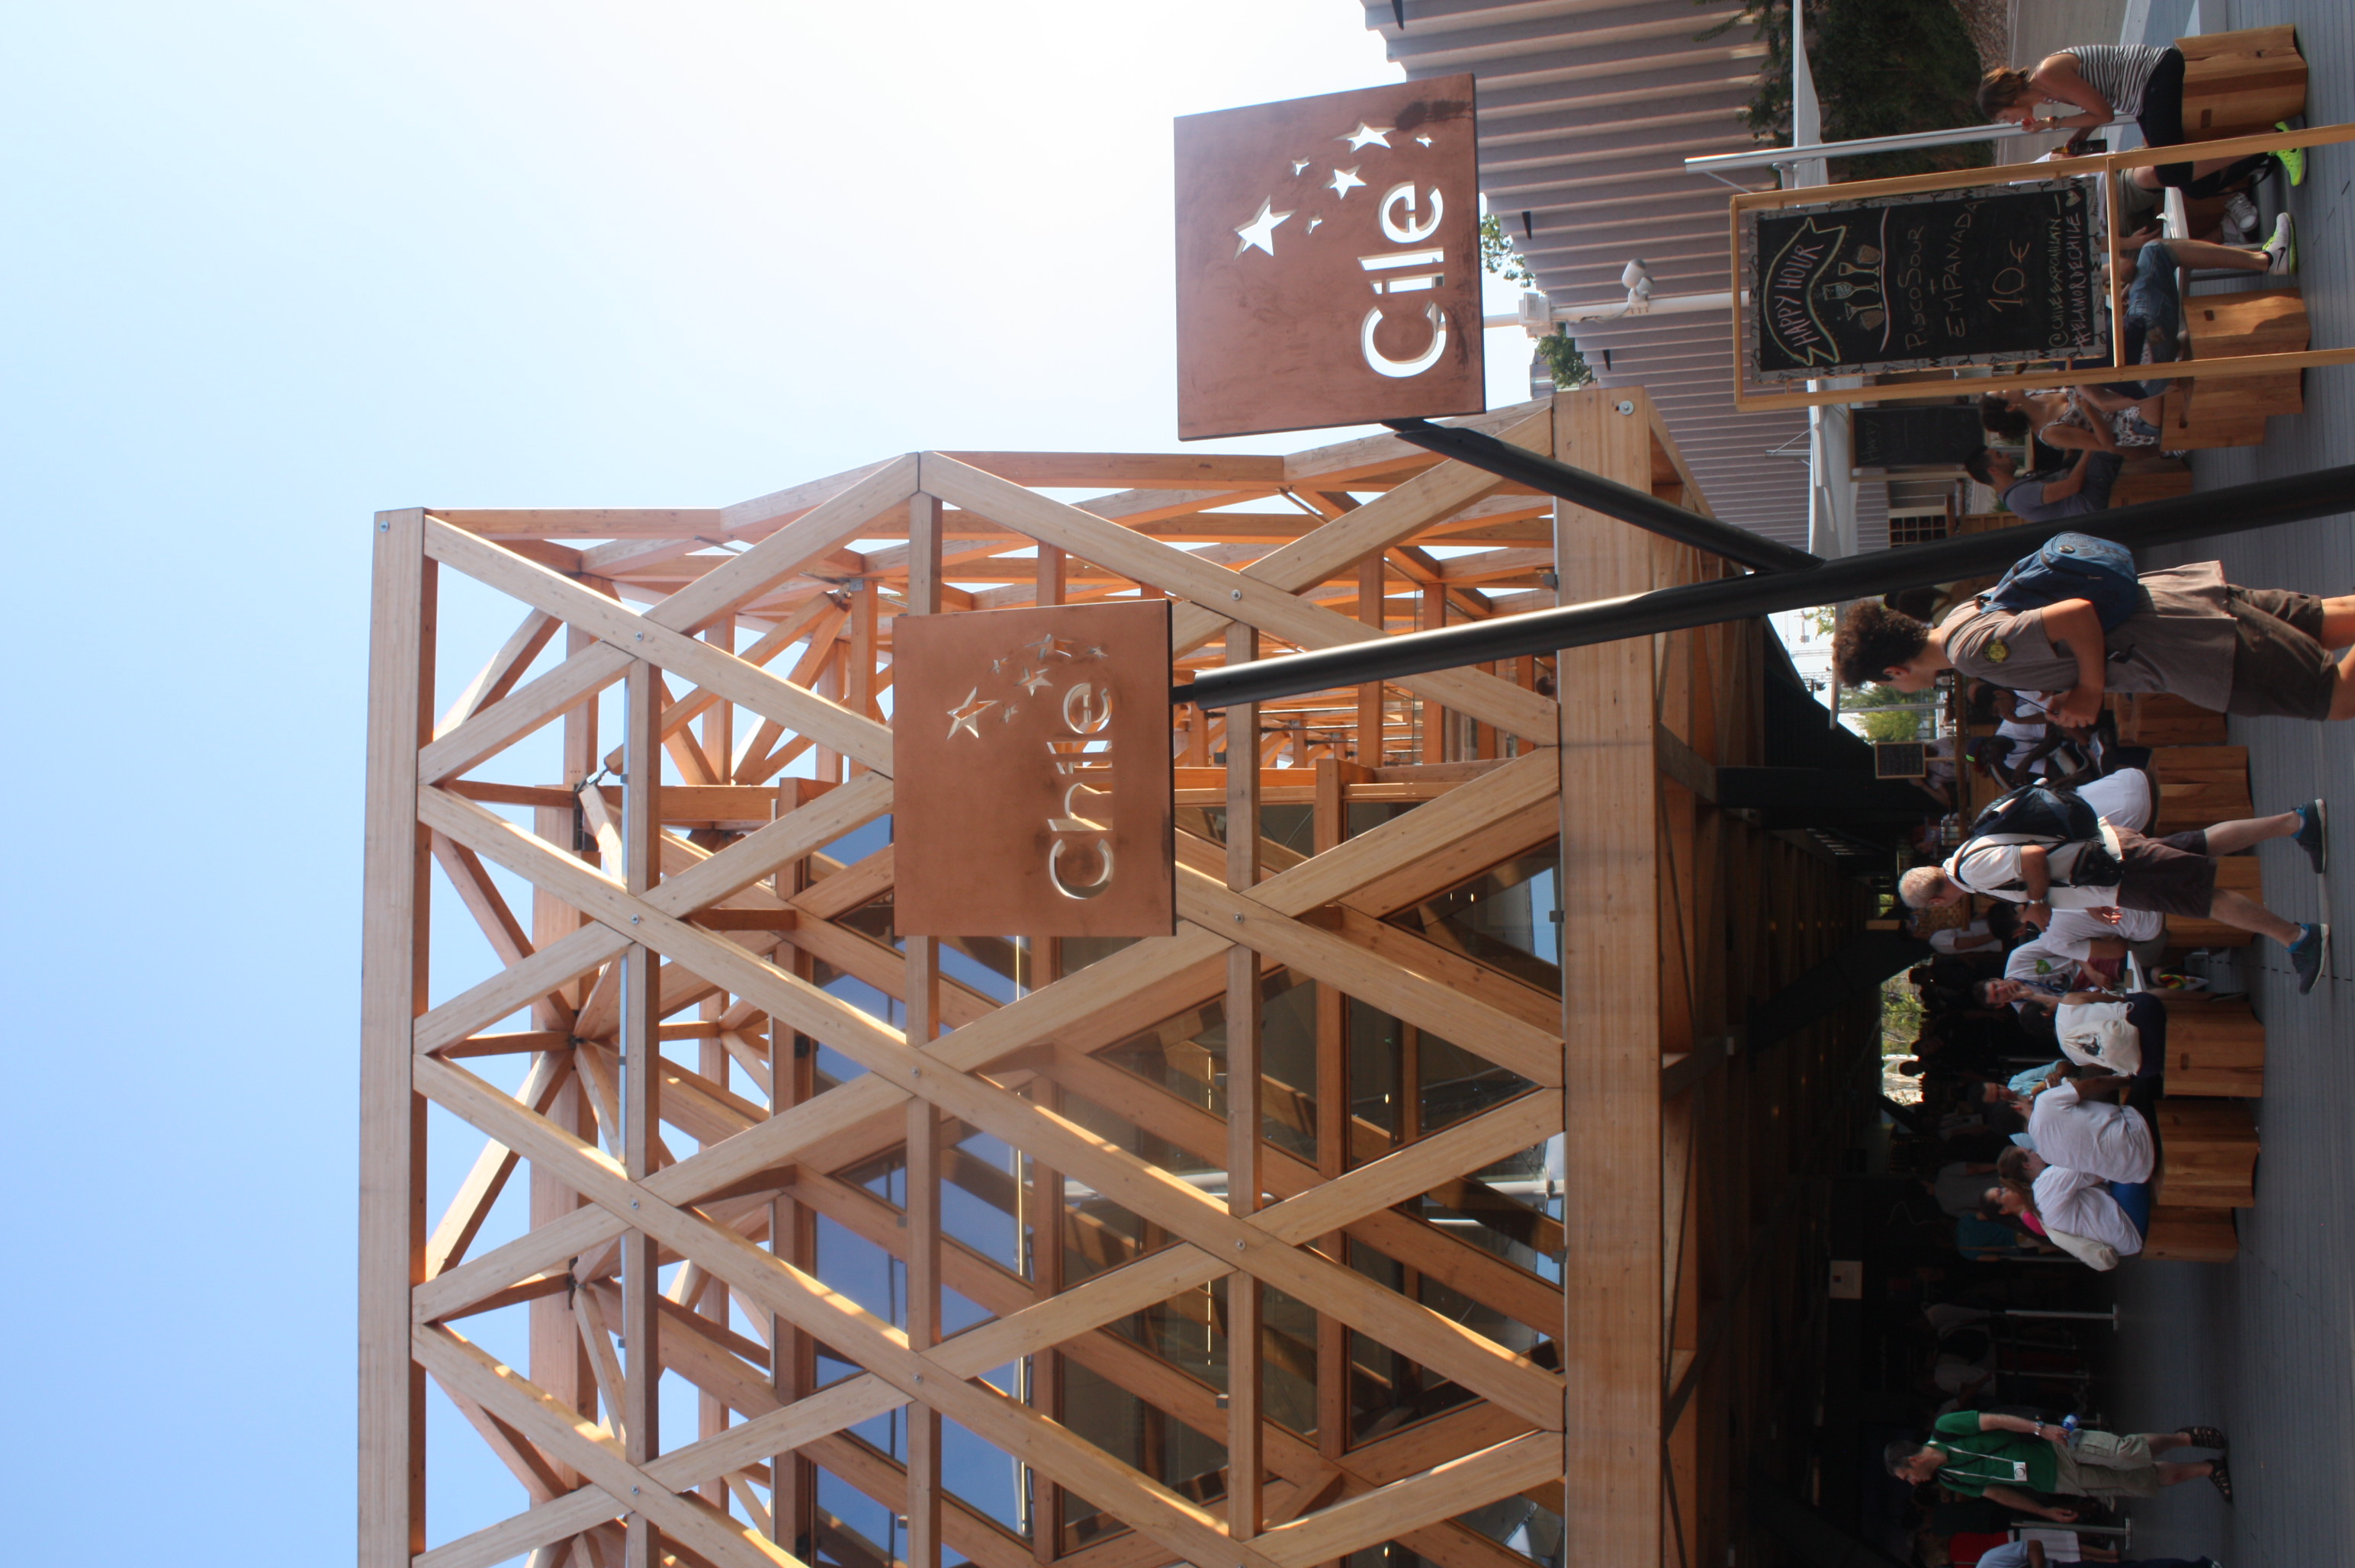 all wood architecture at Chile's pavillon